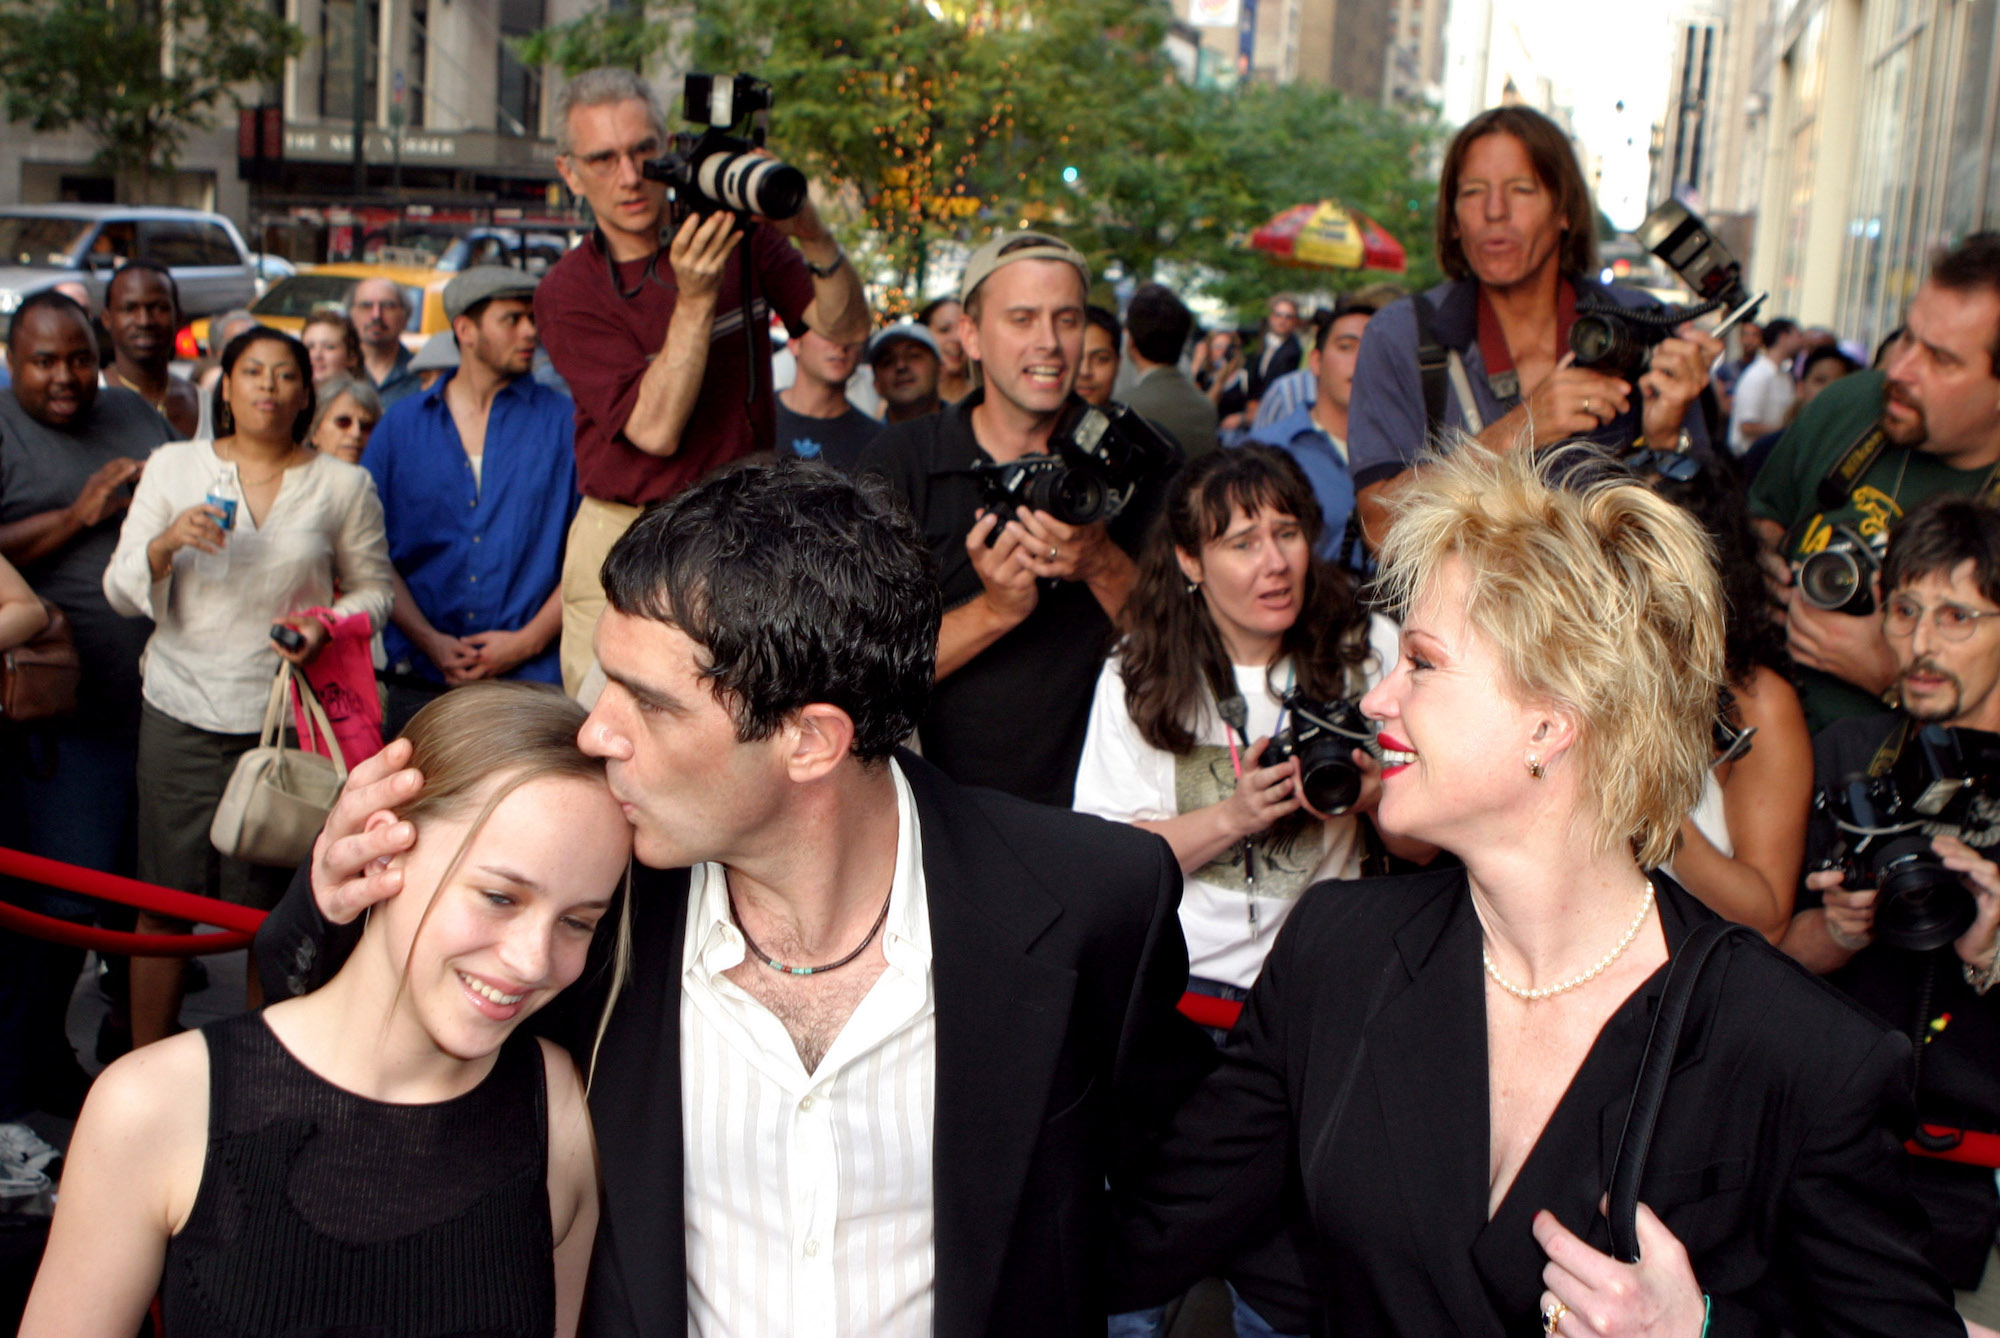 Dakota Johnson, Antonio Banderas and Melanie Griffith at the 'And Starring Pancho Villa As Himself' New York Premiere on Aug. 18, 2003.